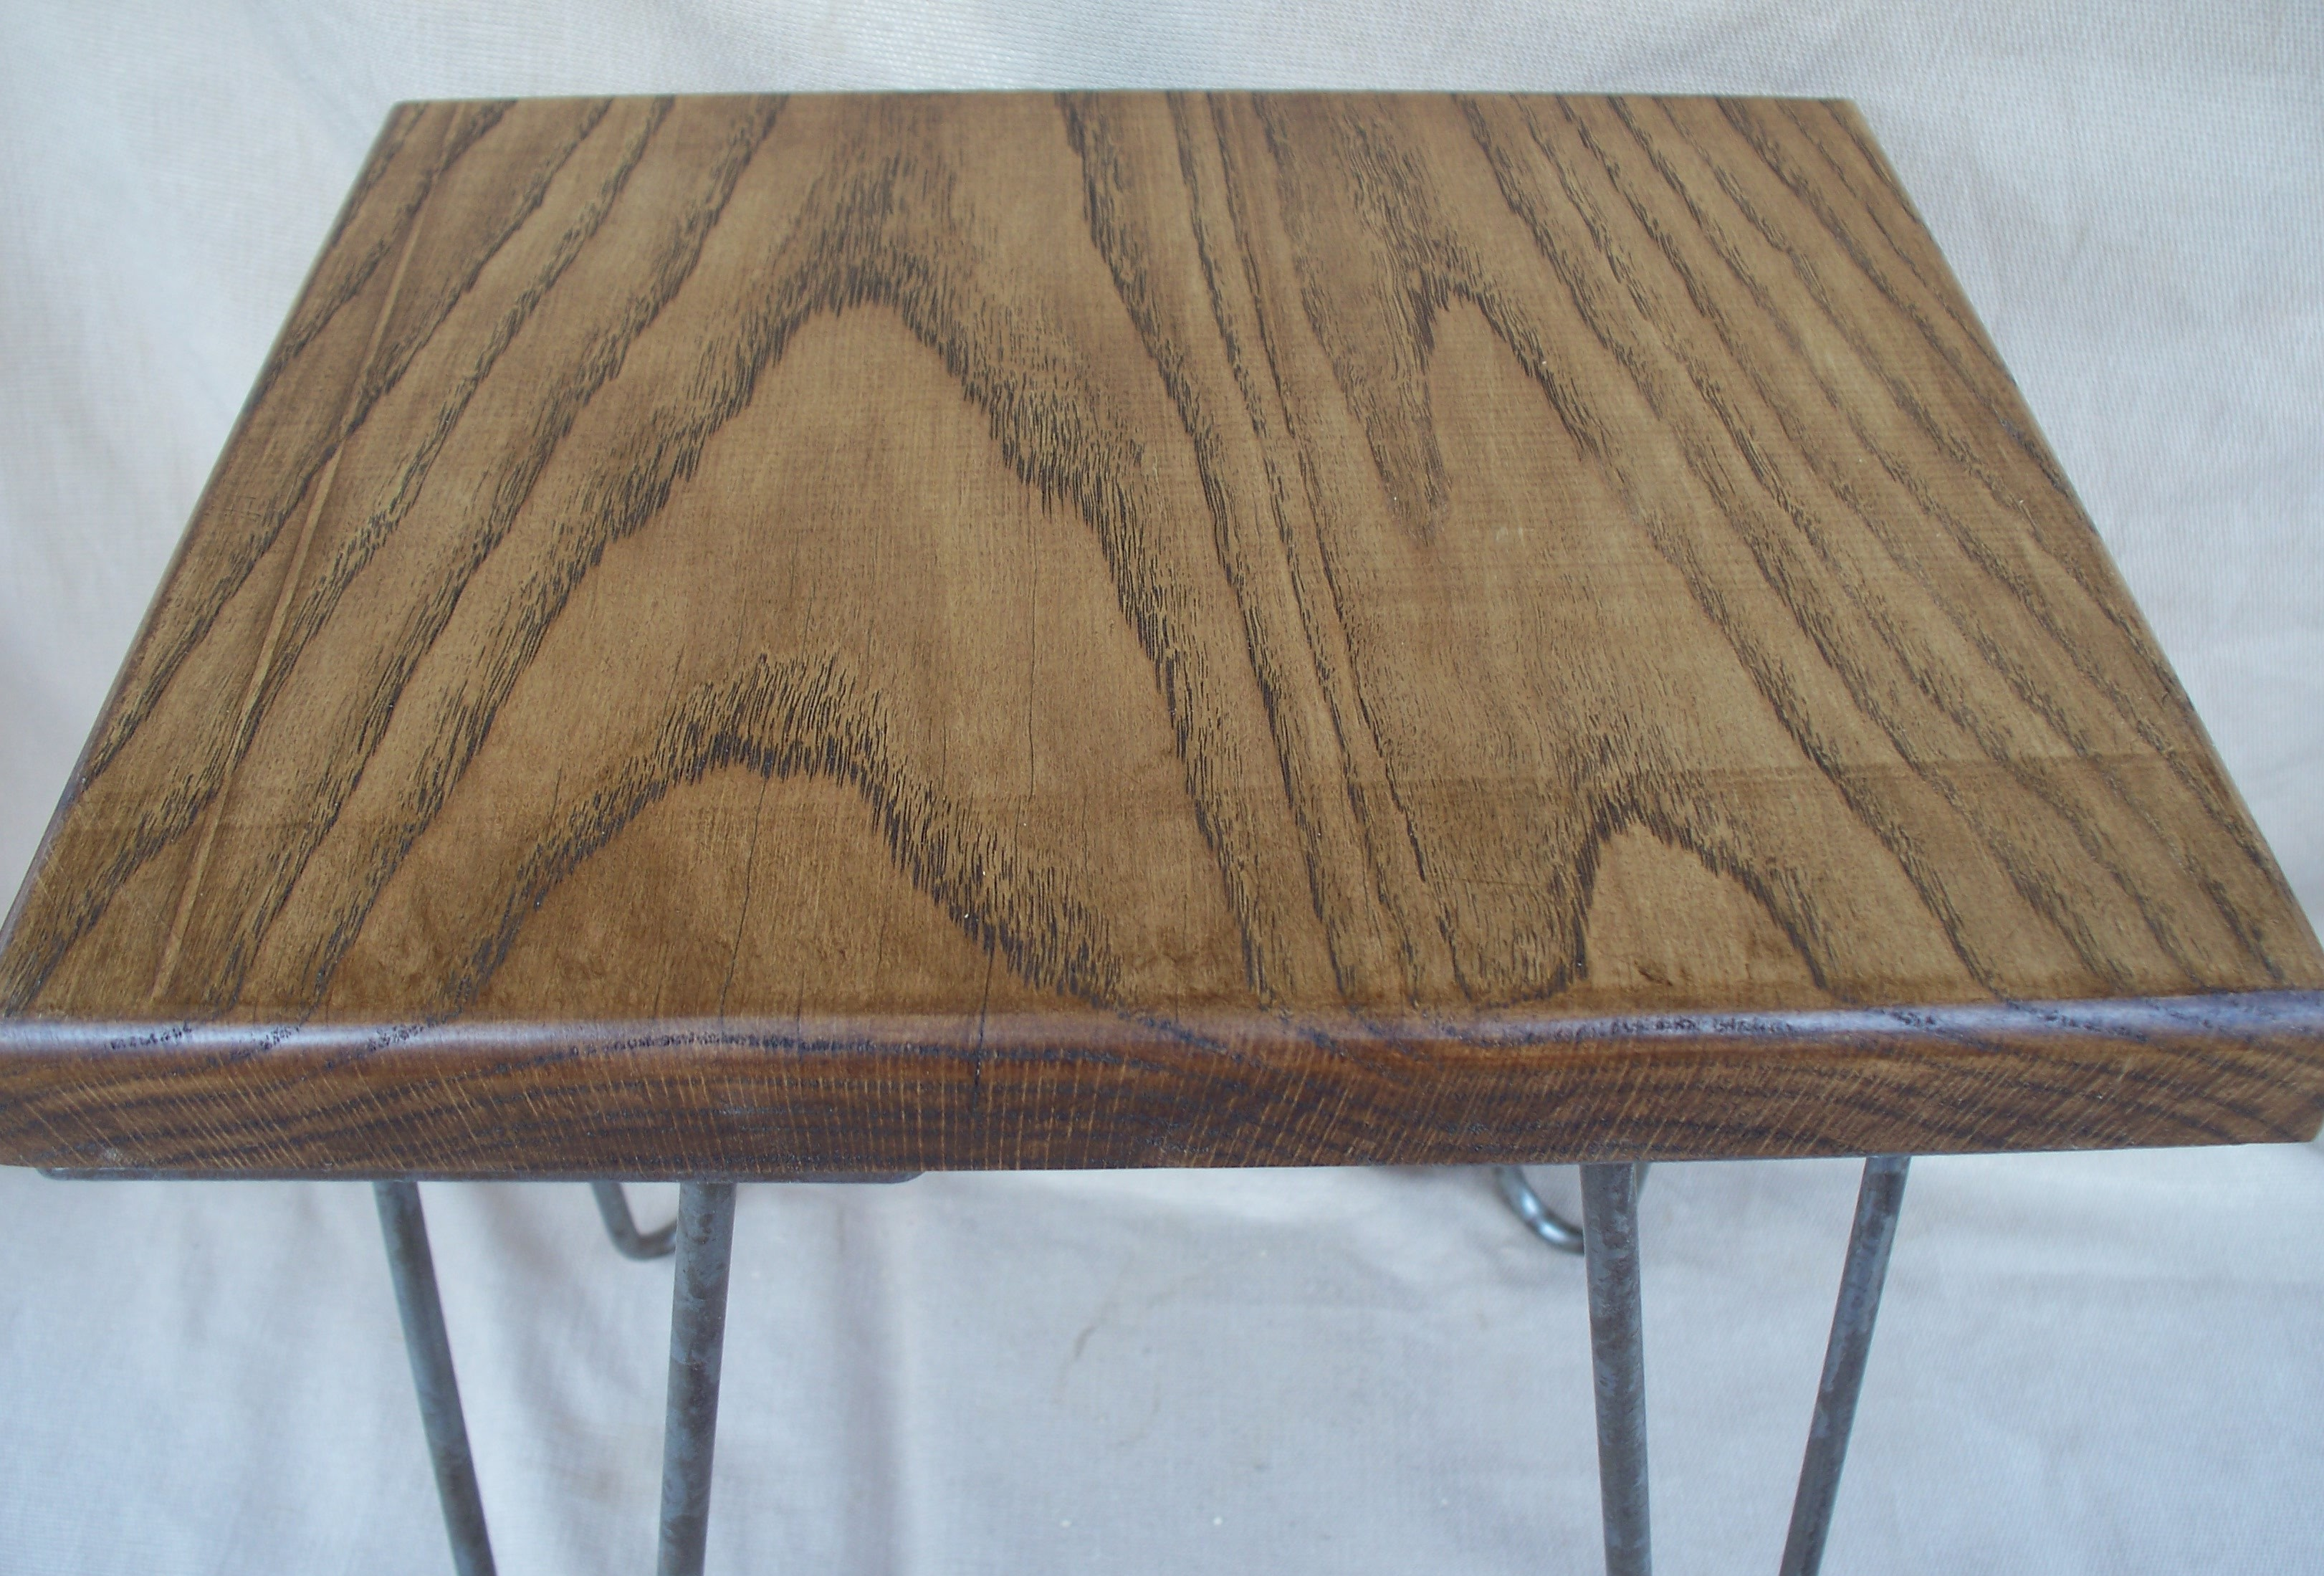 Solid oak side table, coffee table, occasional table. end table on hair pin legs